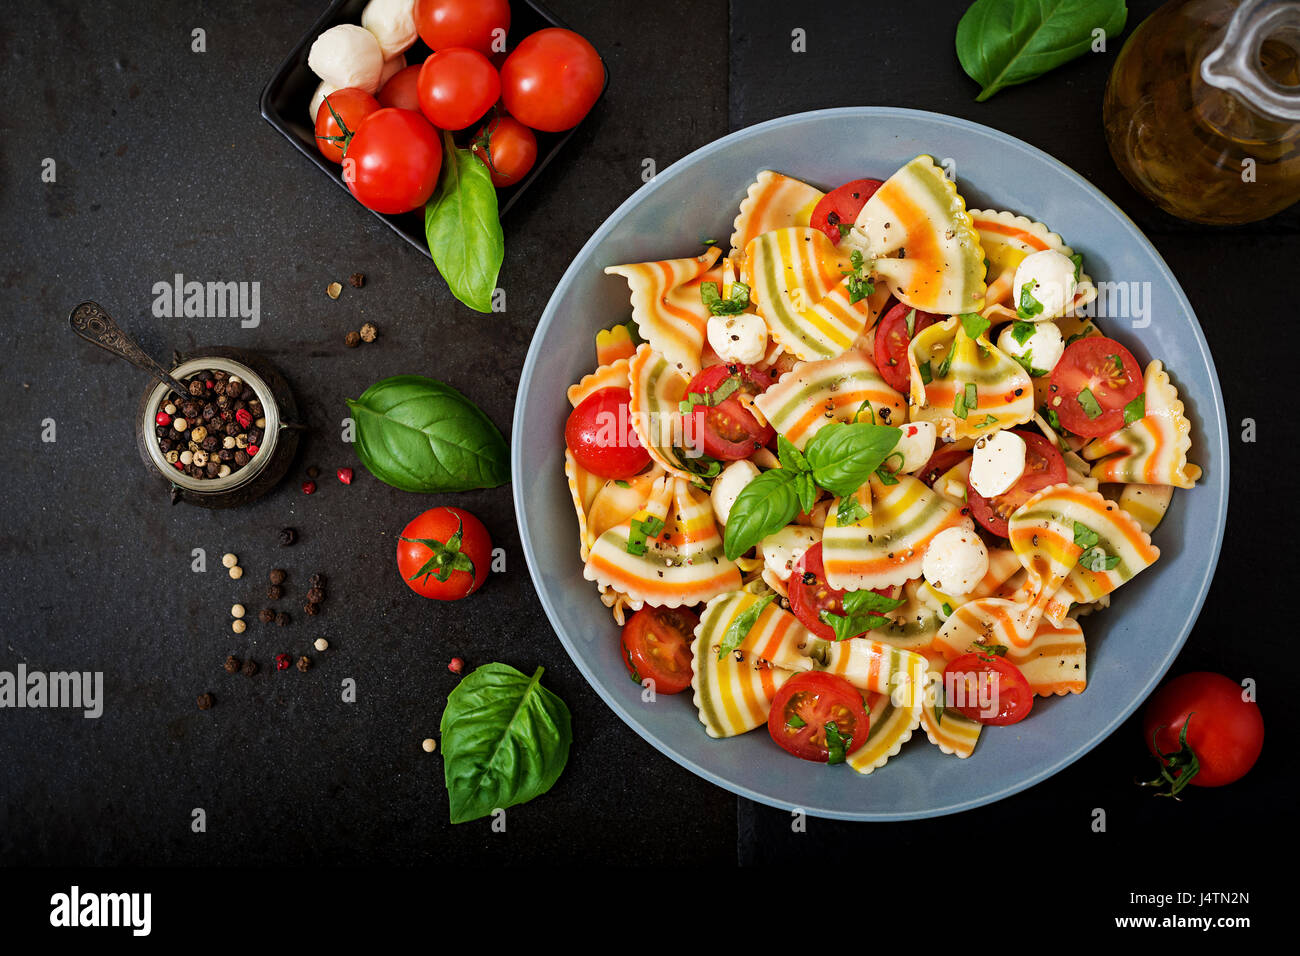 Pasta colored farfalle salad with tomatoes, mozzarella and basil. - Stock Image